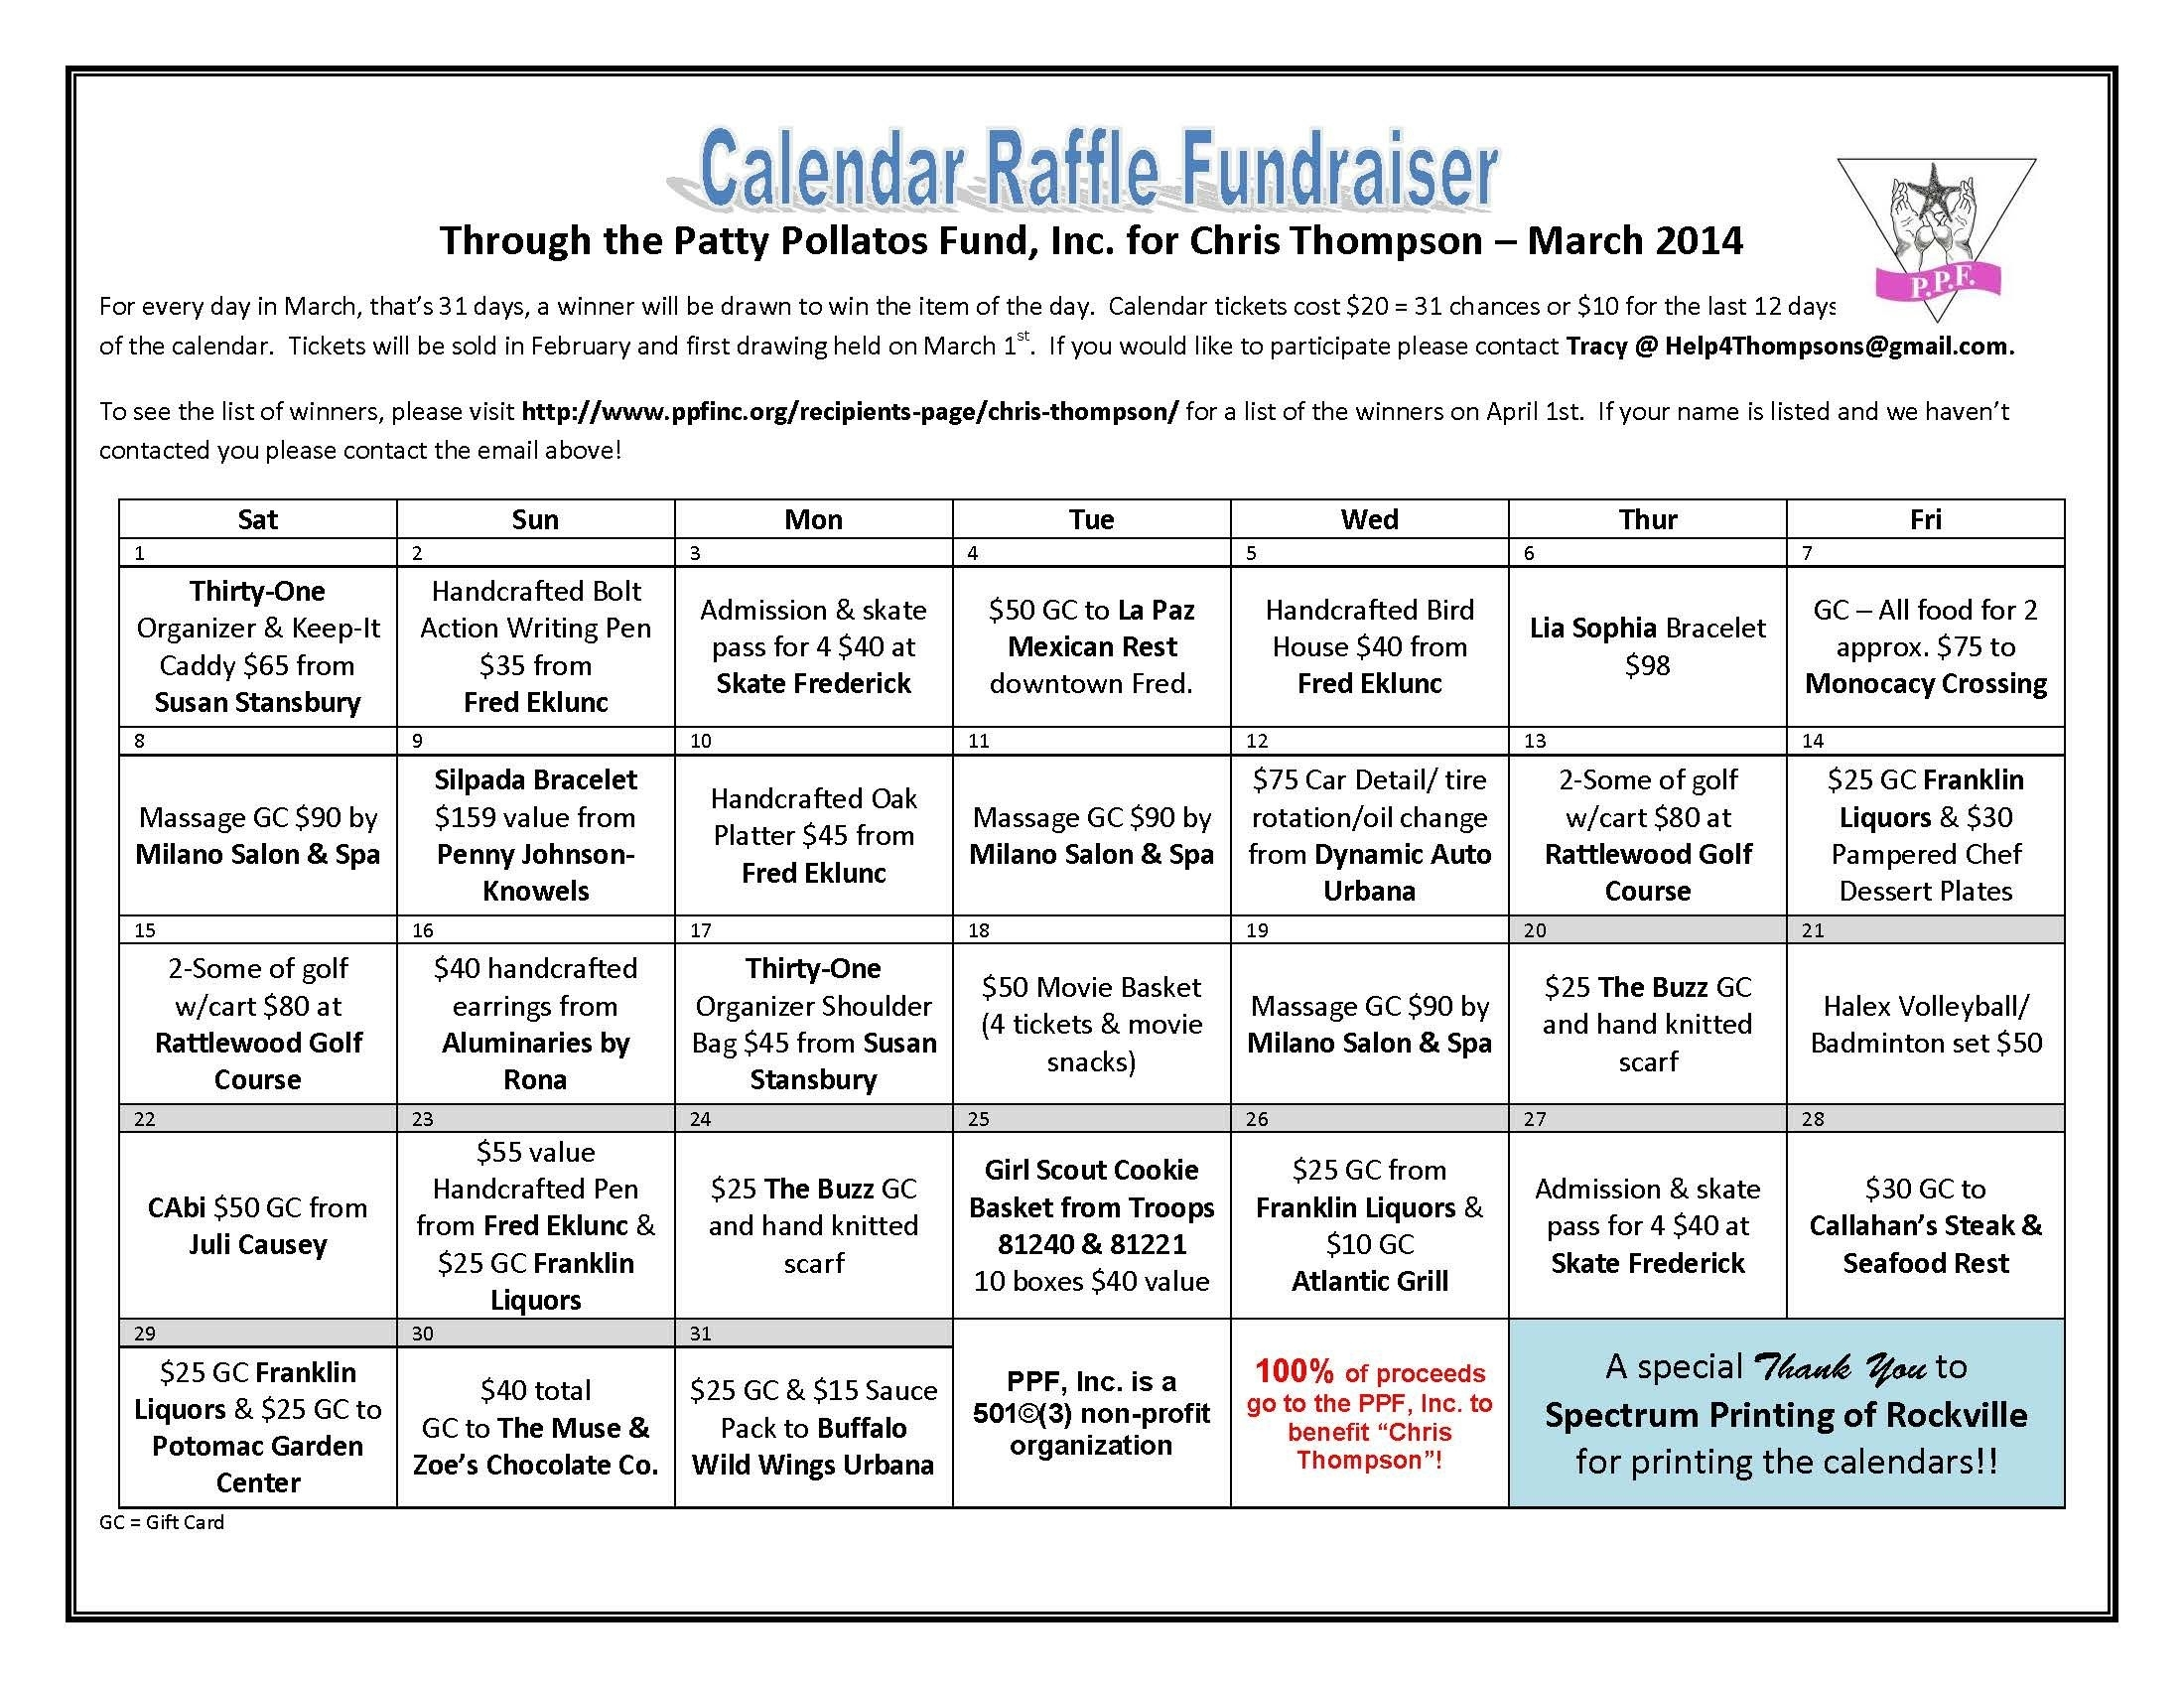 Pin By Meredith Anne On Gymnastics | Fundraising, Calendar